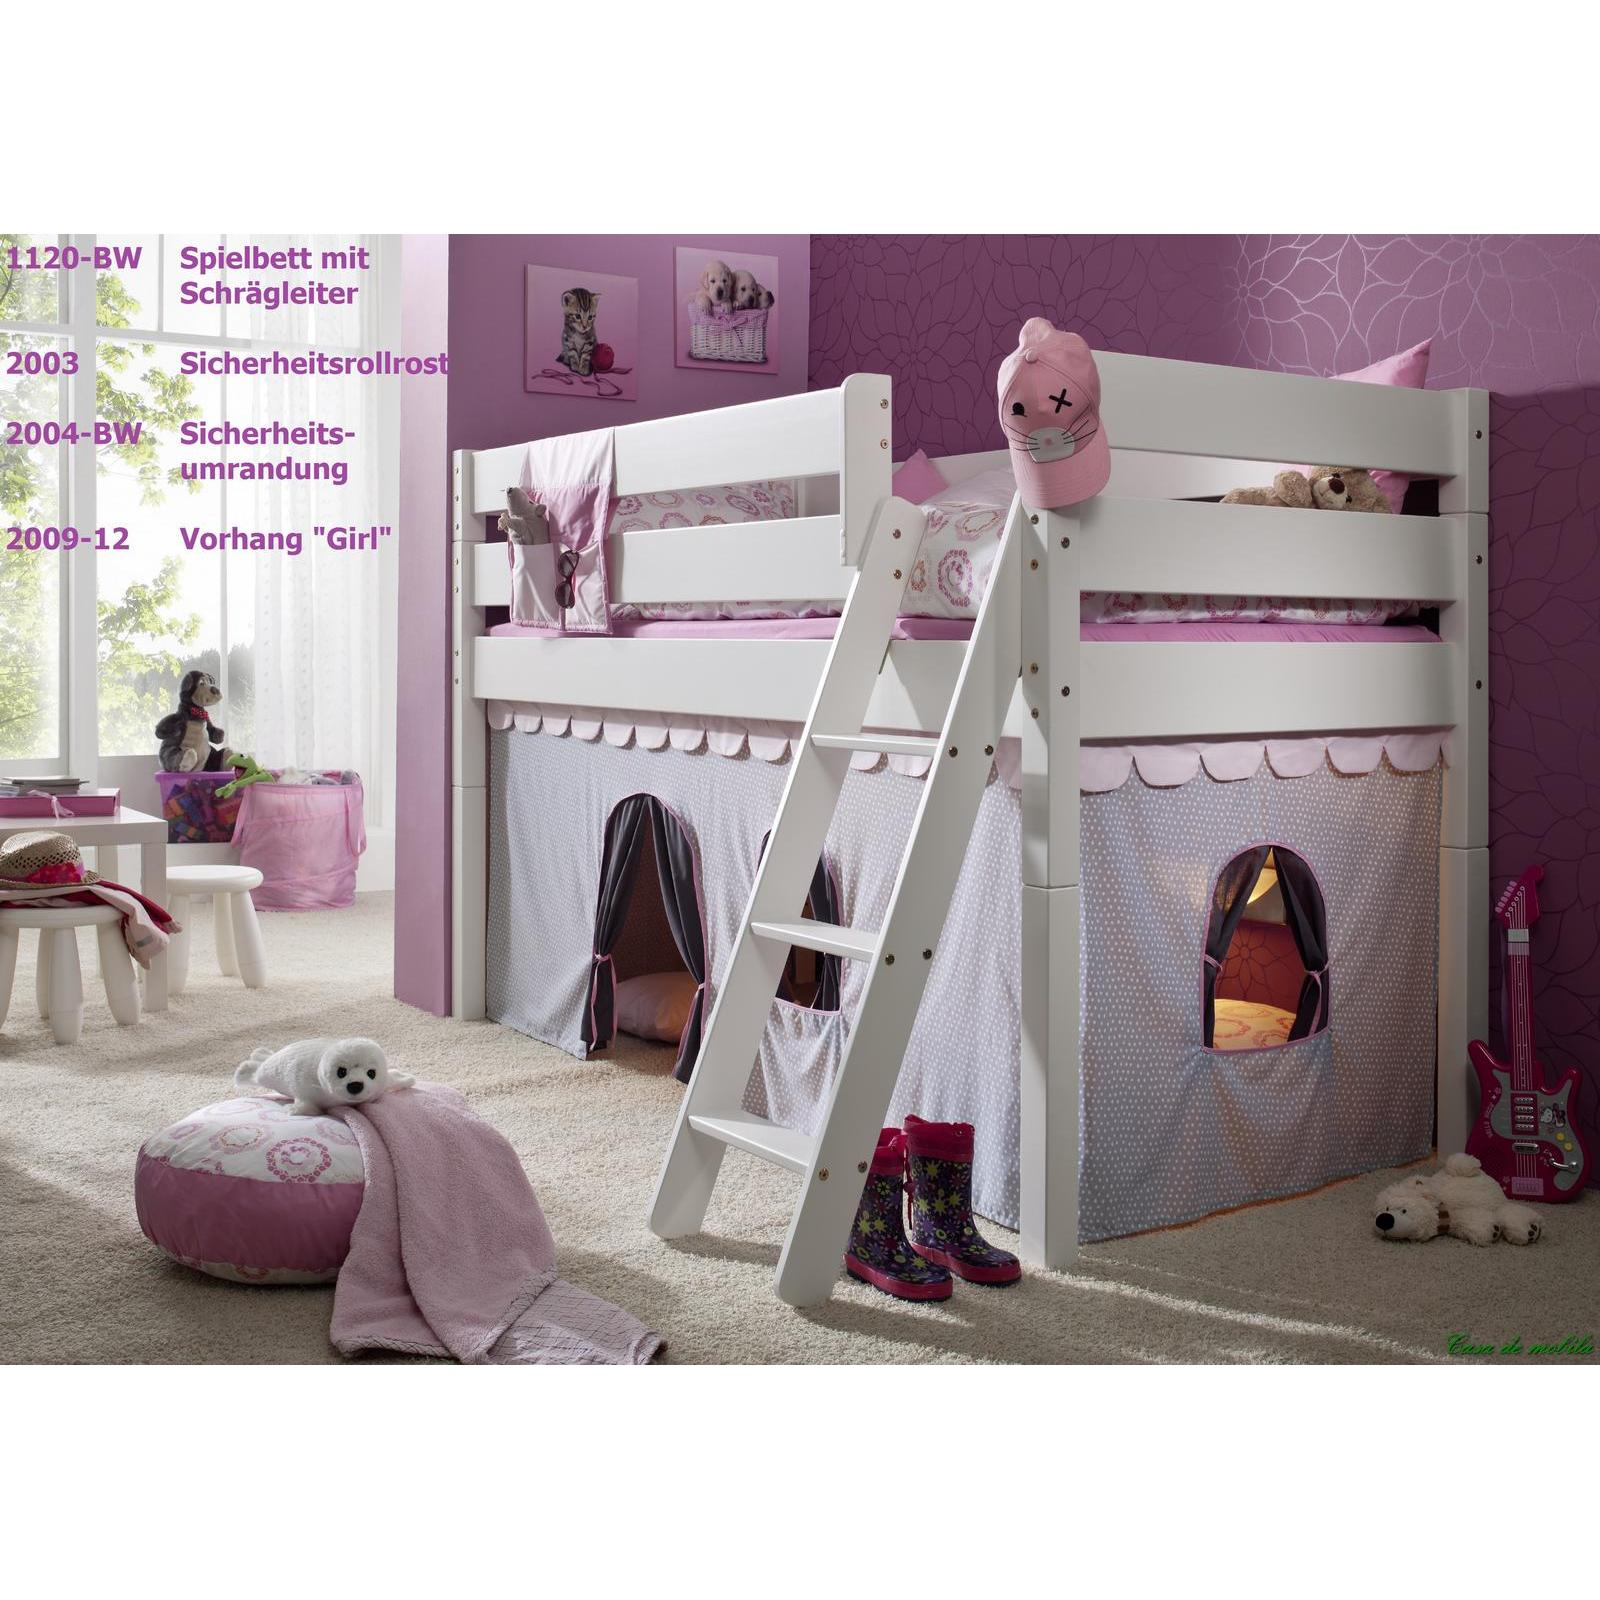 massivholz hochbett buche massiv wei hannover kinderbett mit vorhang und schr gleiter. Black Bedroom Furniture Sets. Home Design Ideas